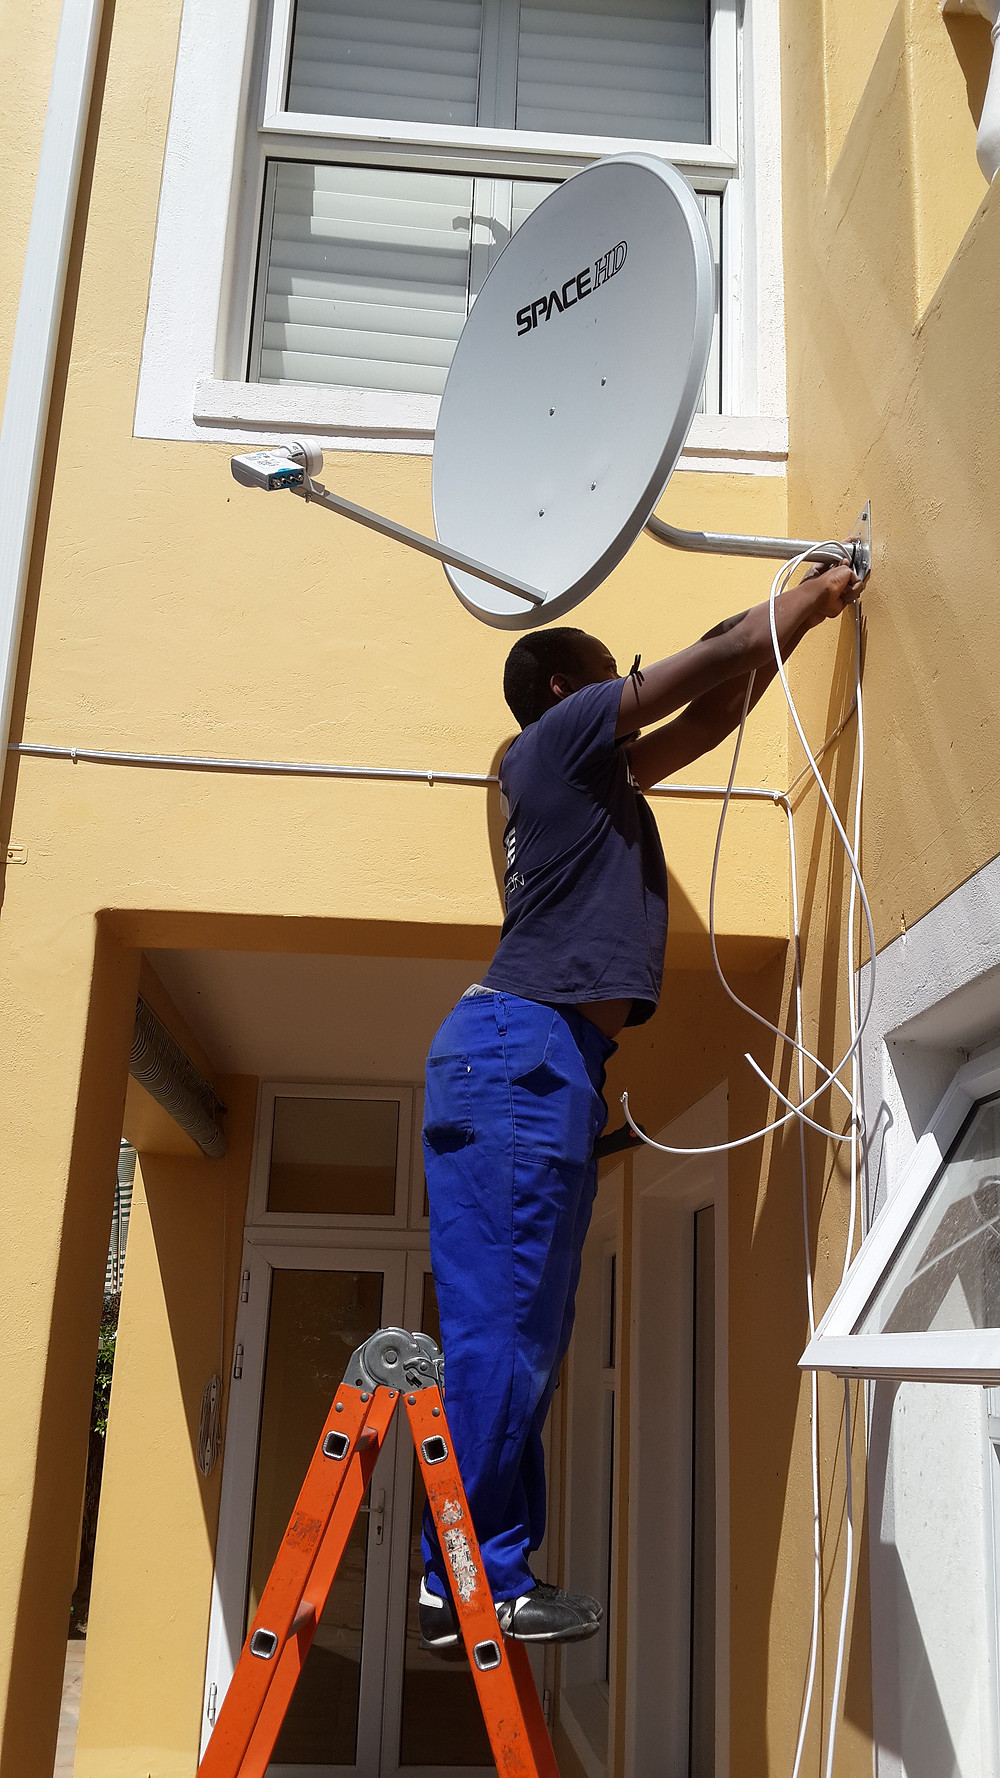 Installations can only be done by DStv Accredited Installers